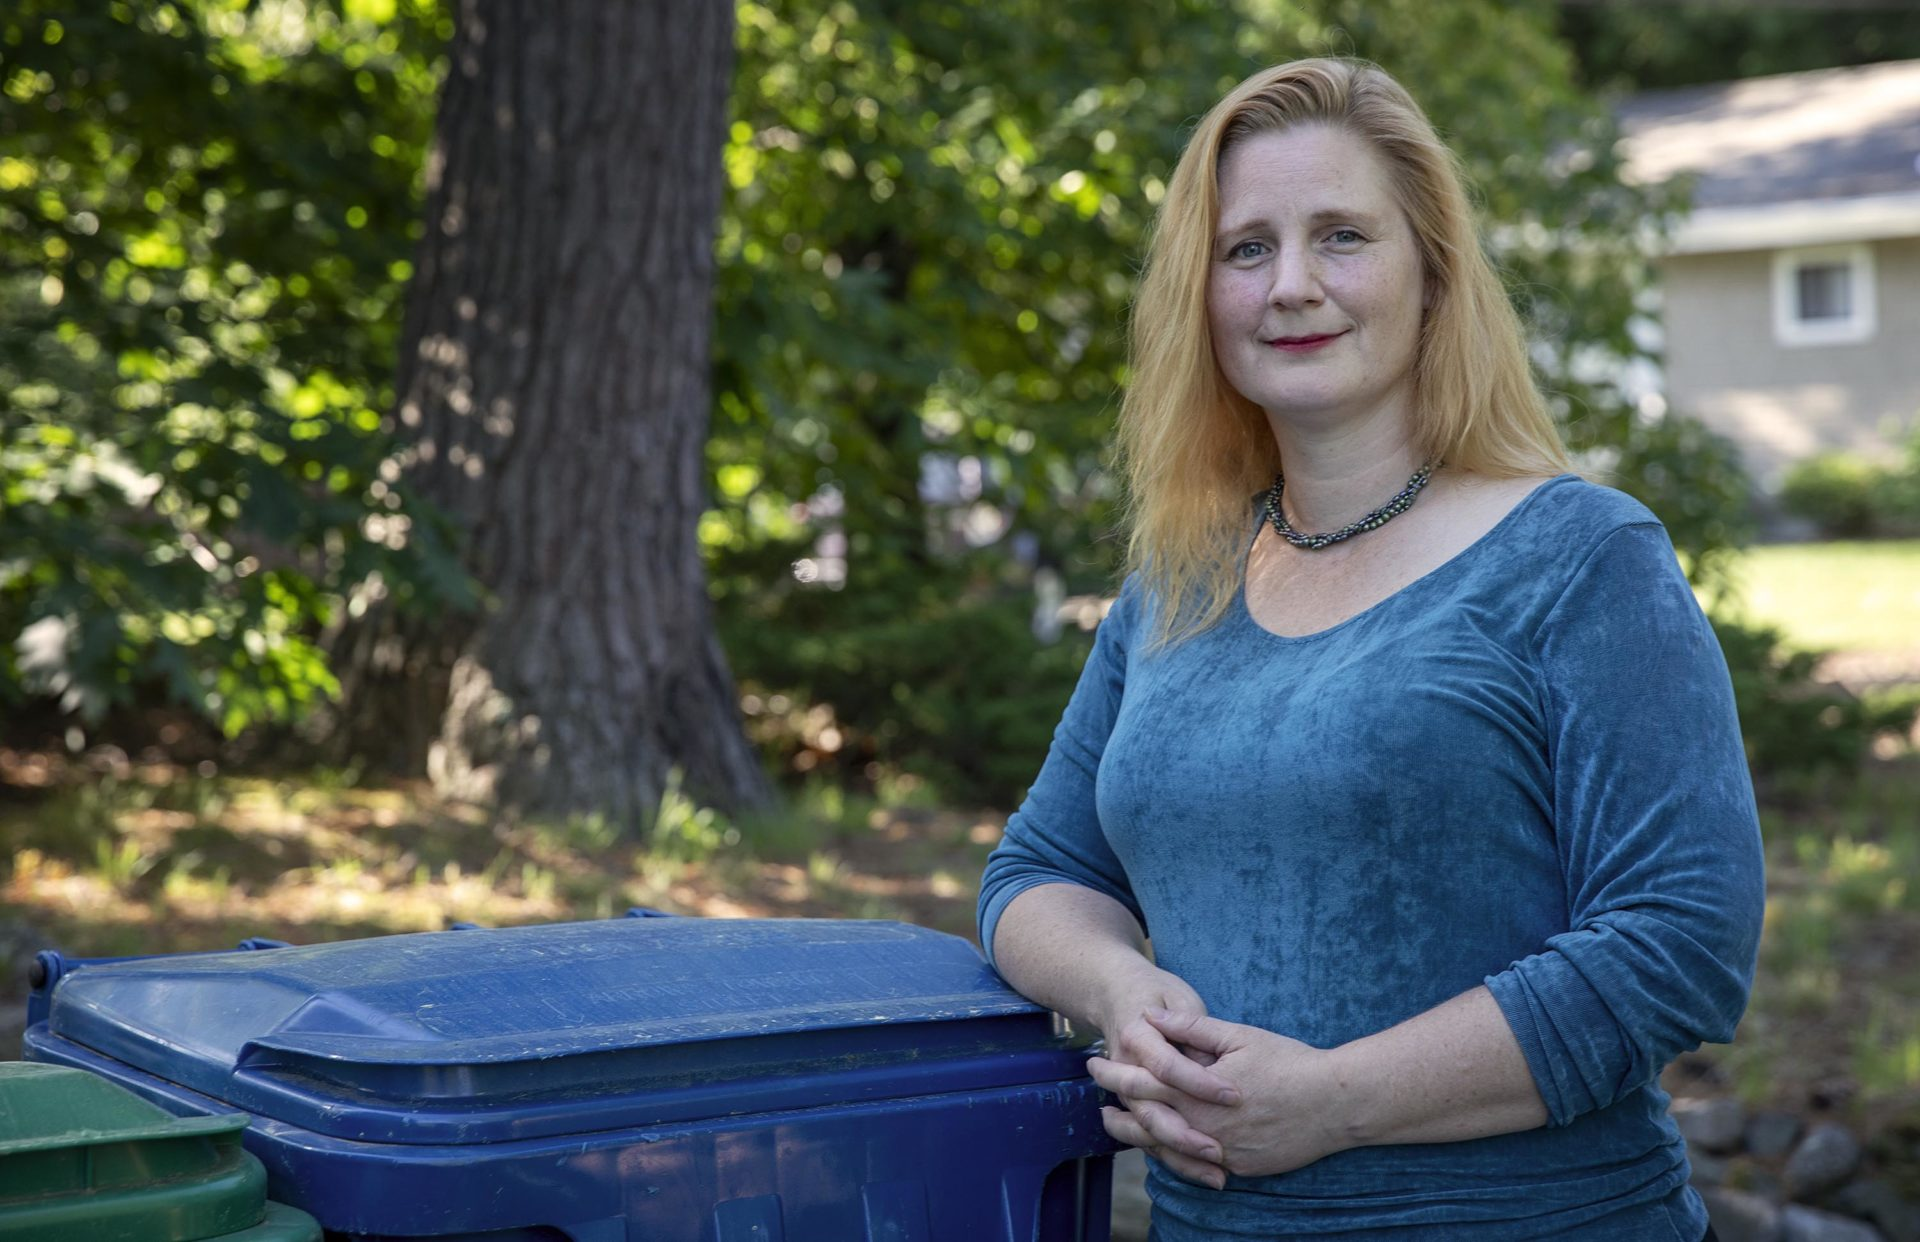 Gretchen Carey, president of MassRecycle. (Robin Lubbock/WBUR)